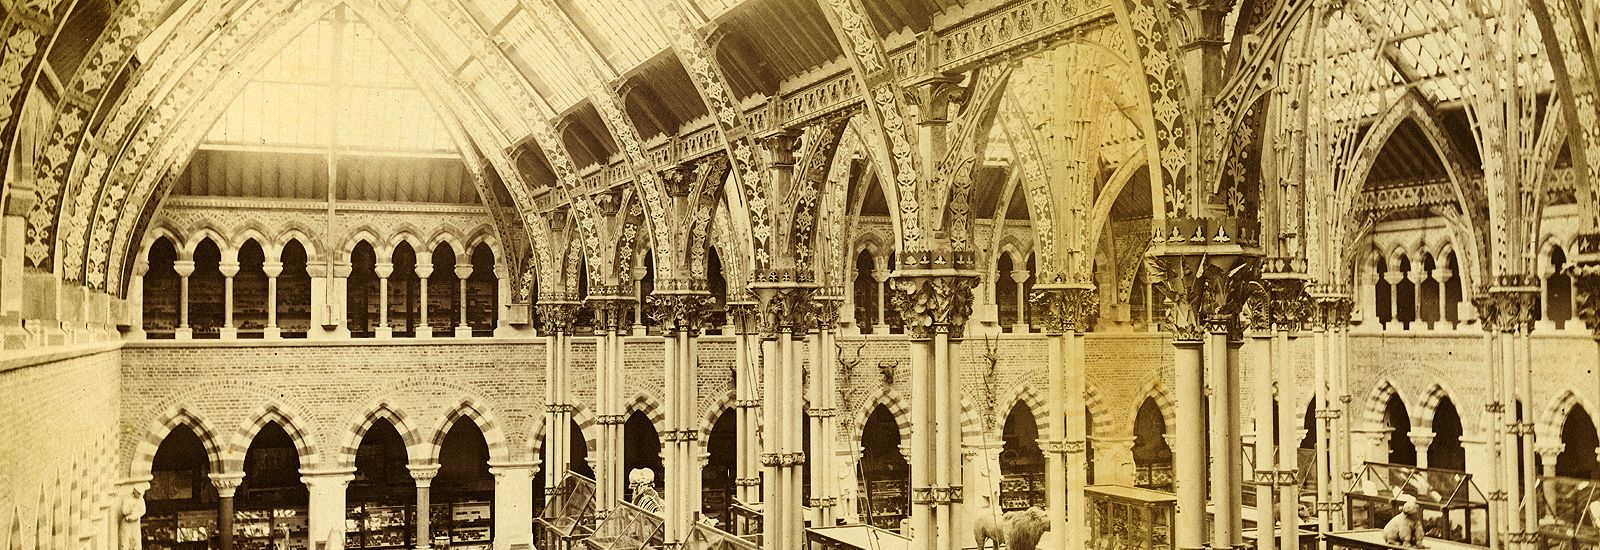 Archive image of the museum's interior